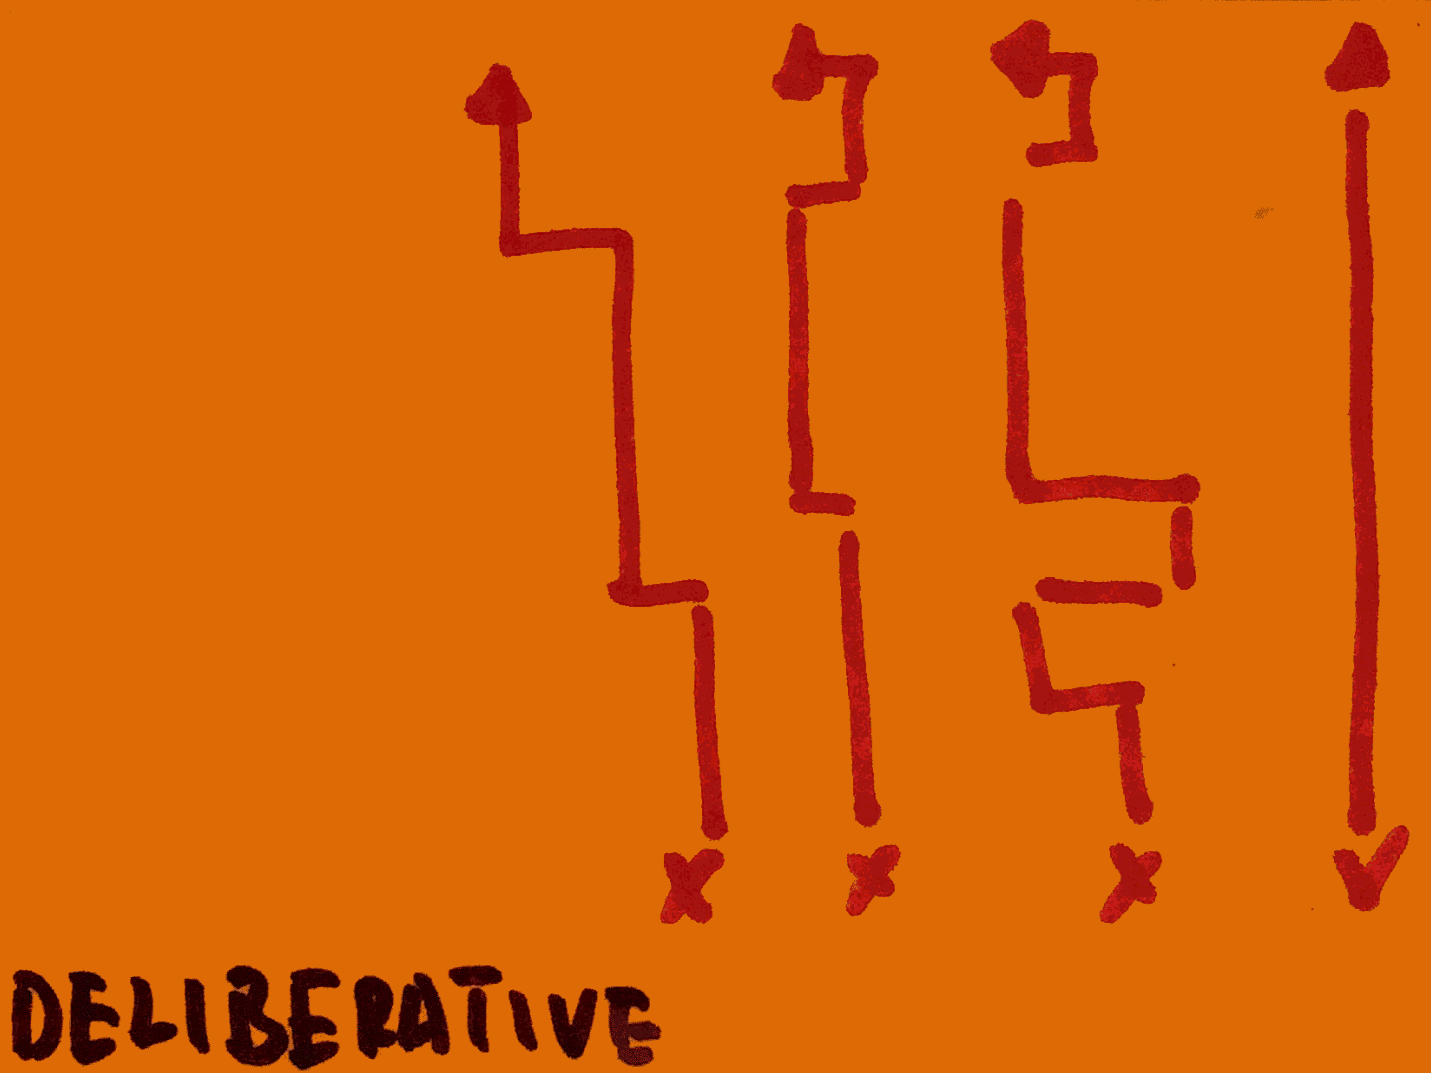 Deliberative StrengthsFinder Singapore Crooked Narrow Lines